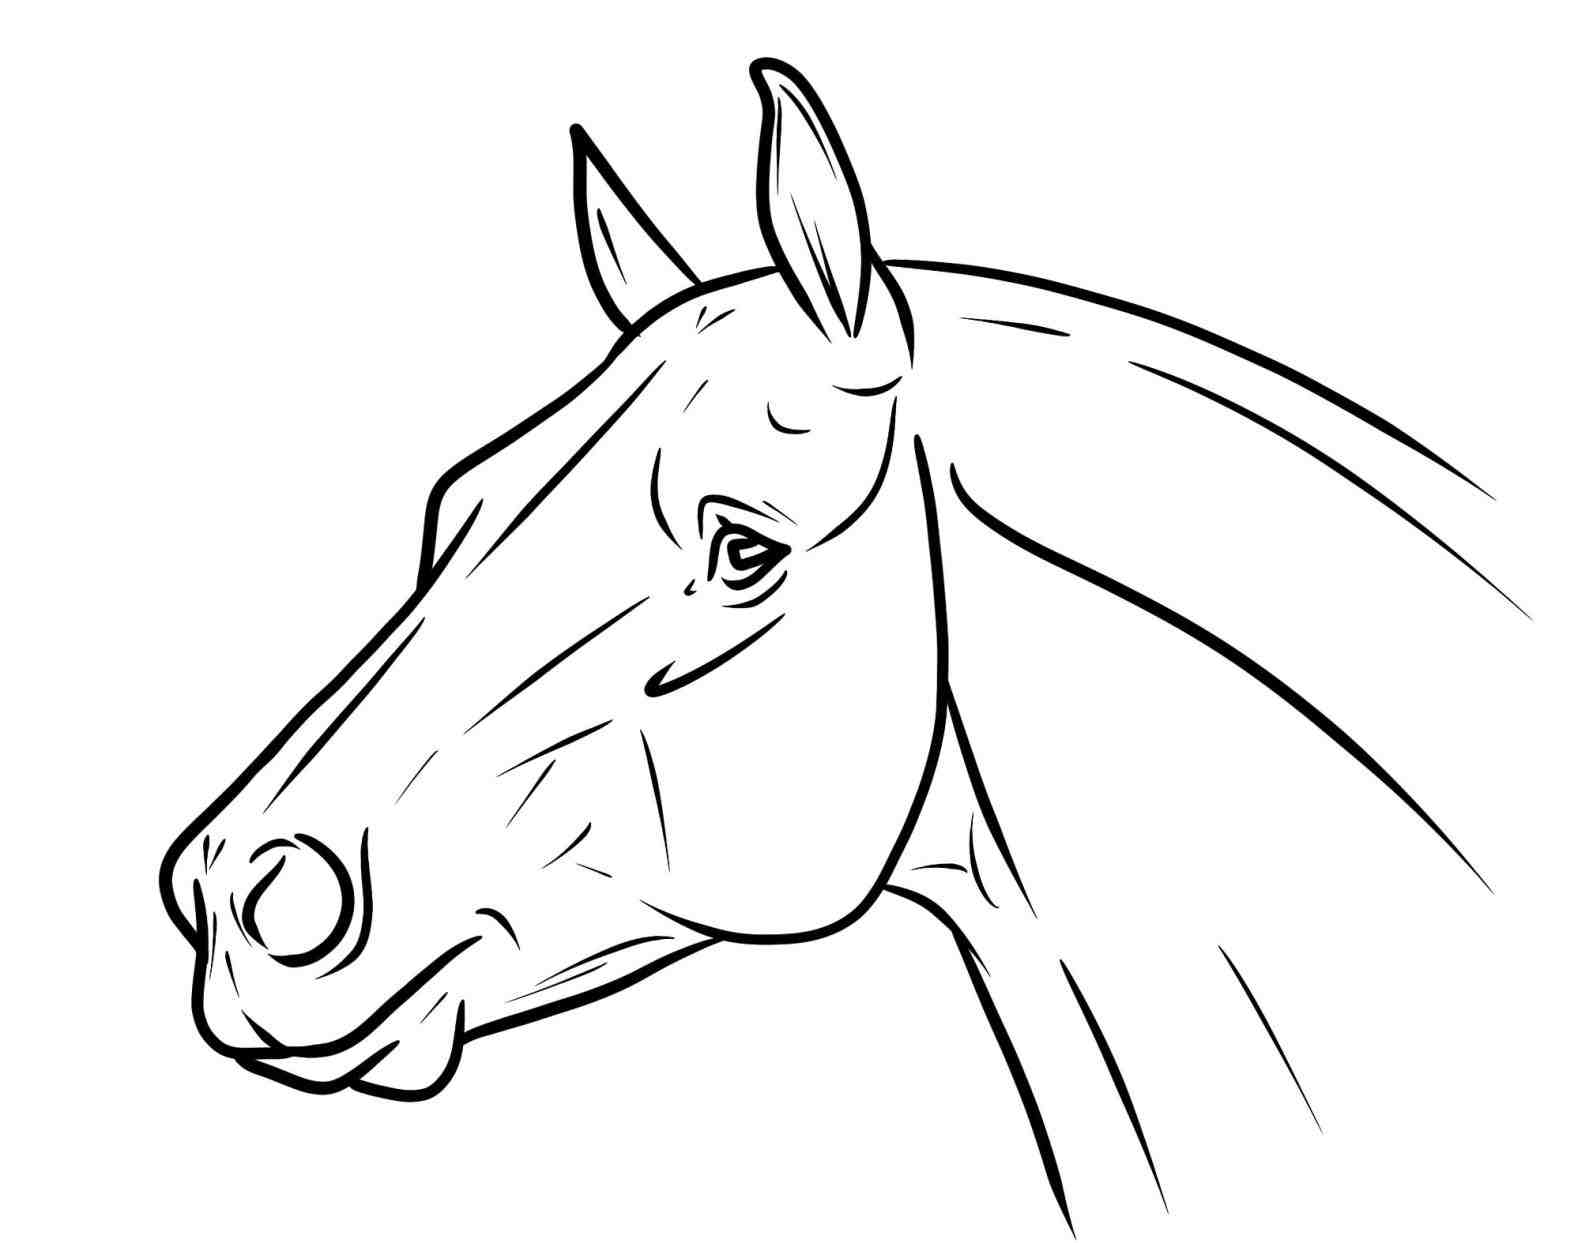 Horses Head Drawing At Getdrawings Com Free For Personal Use